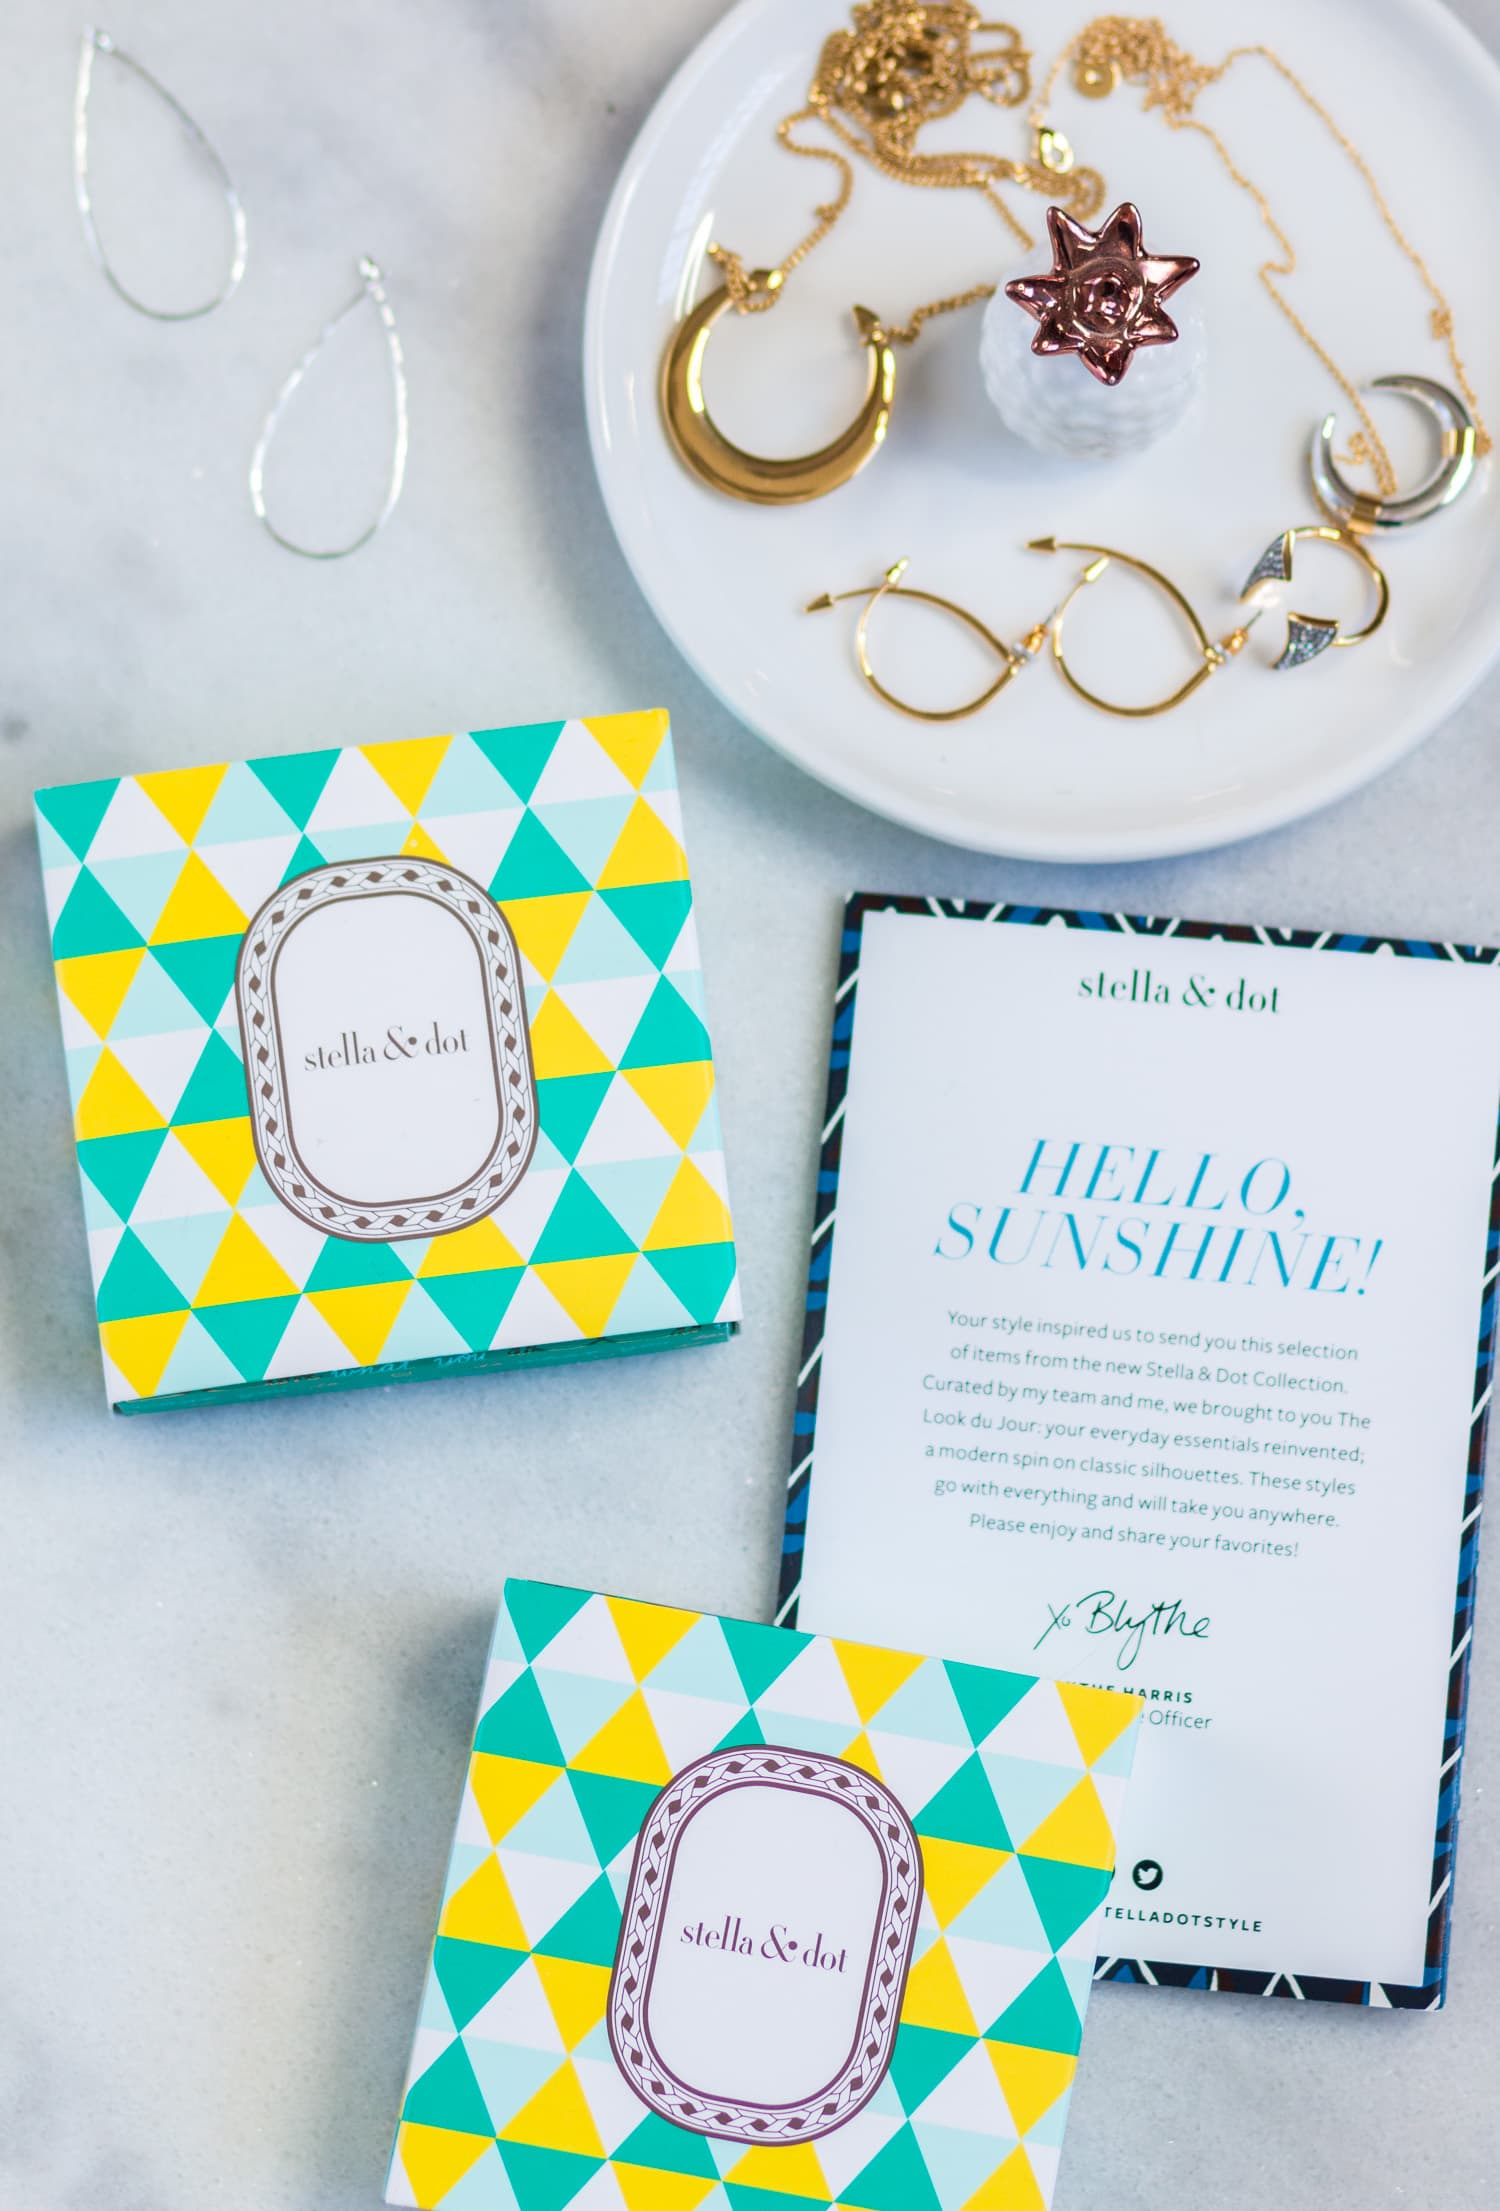 See how blogger Ashley Brooke Nicholas styles the Stella & Dot fall collection + read a full review of the newly released Stella & Dot jewelry and handbags.